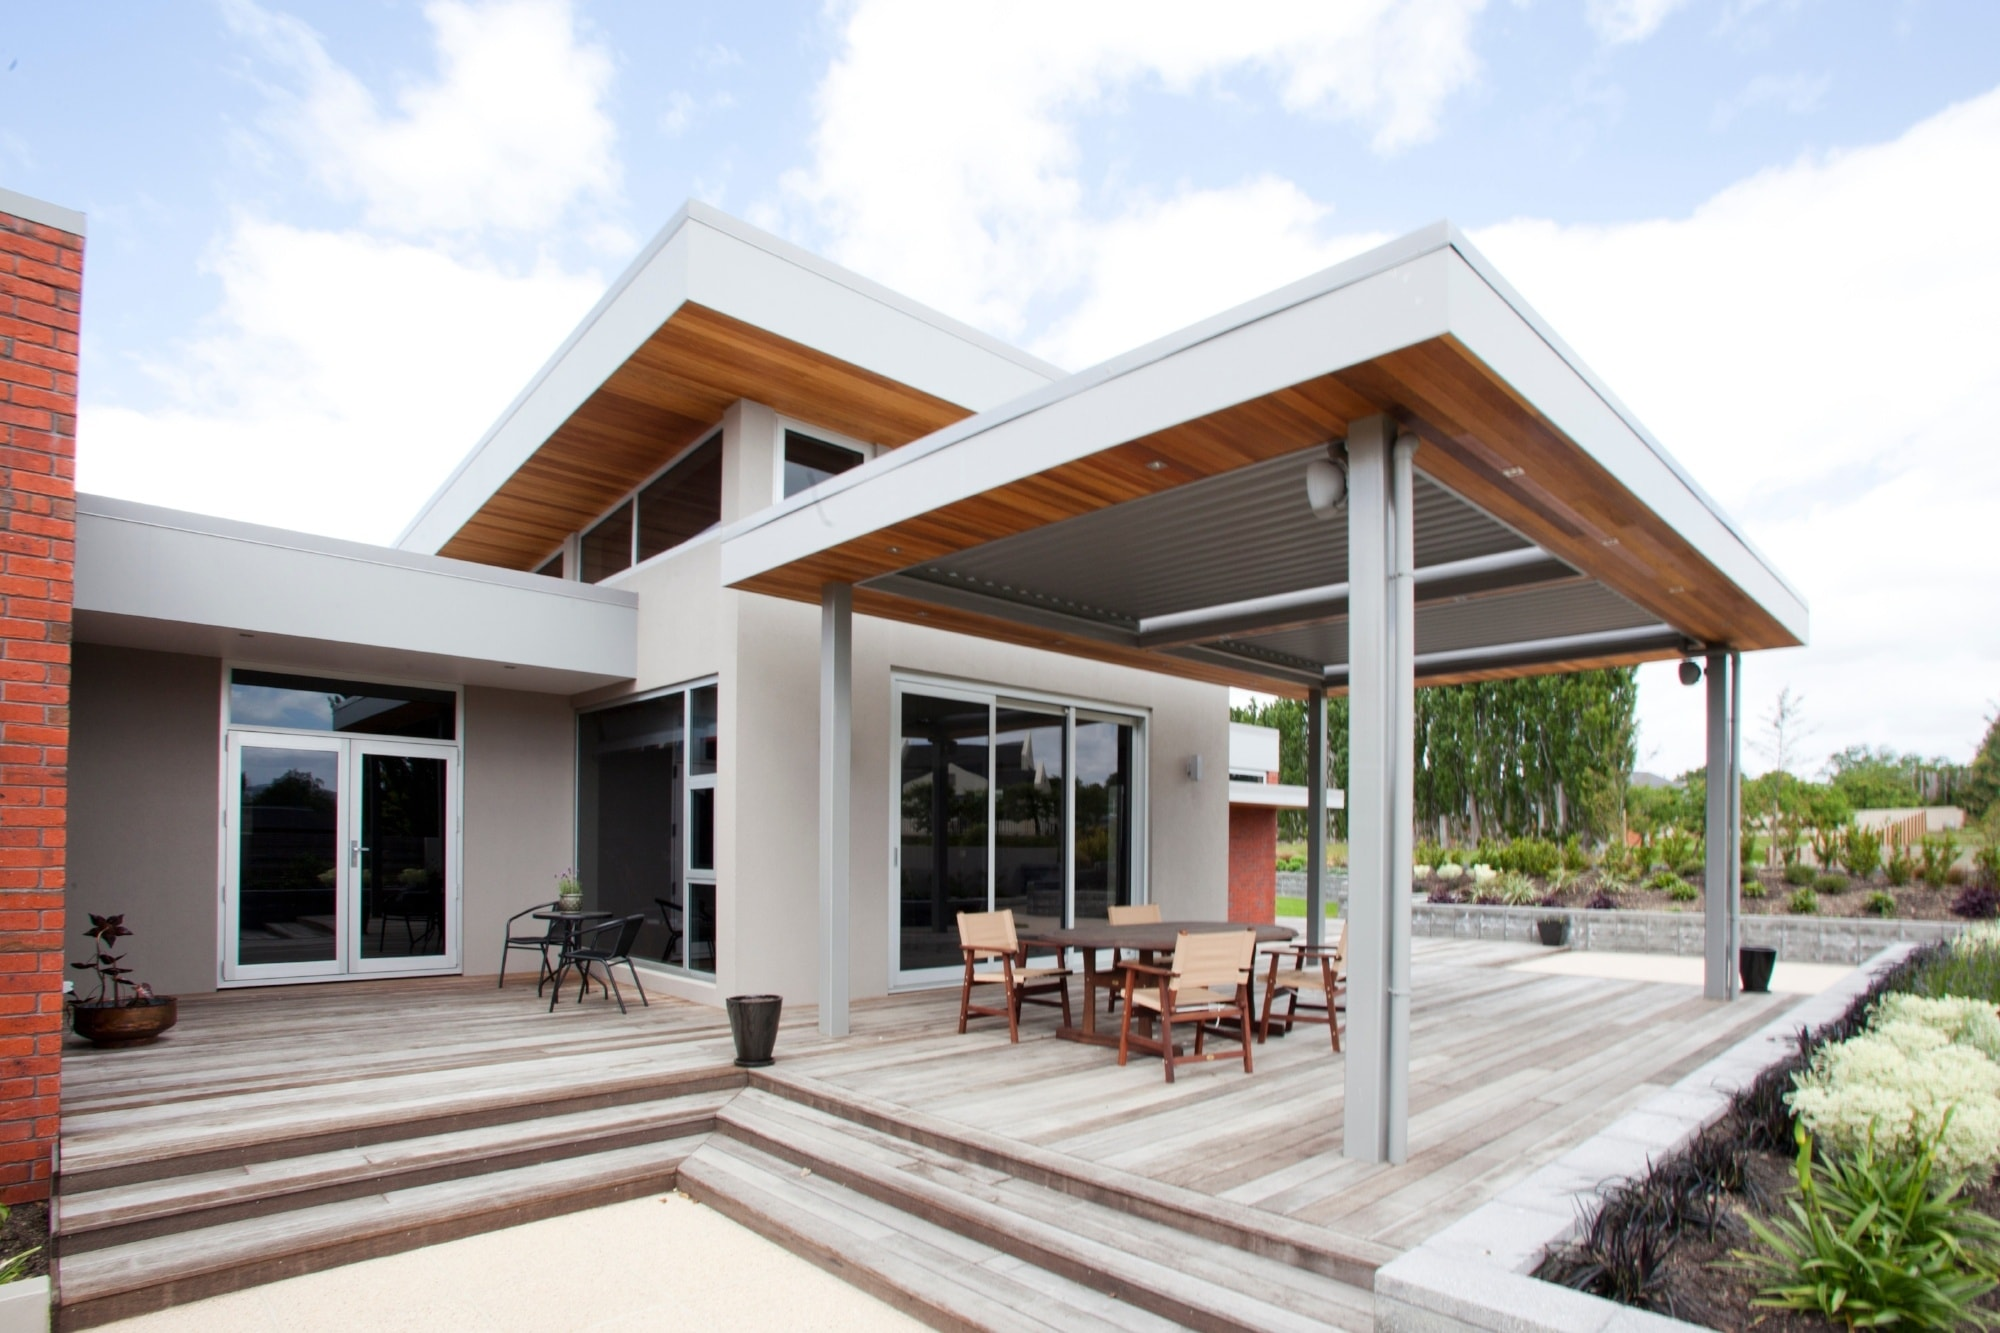 Learn about the Aurae pergola system